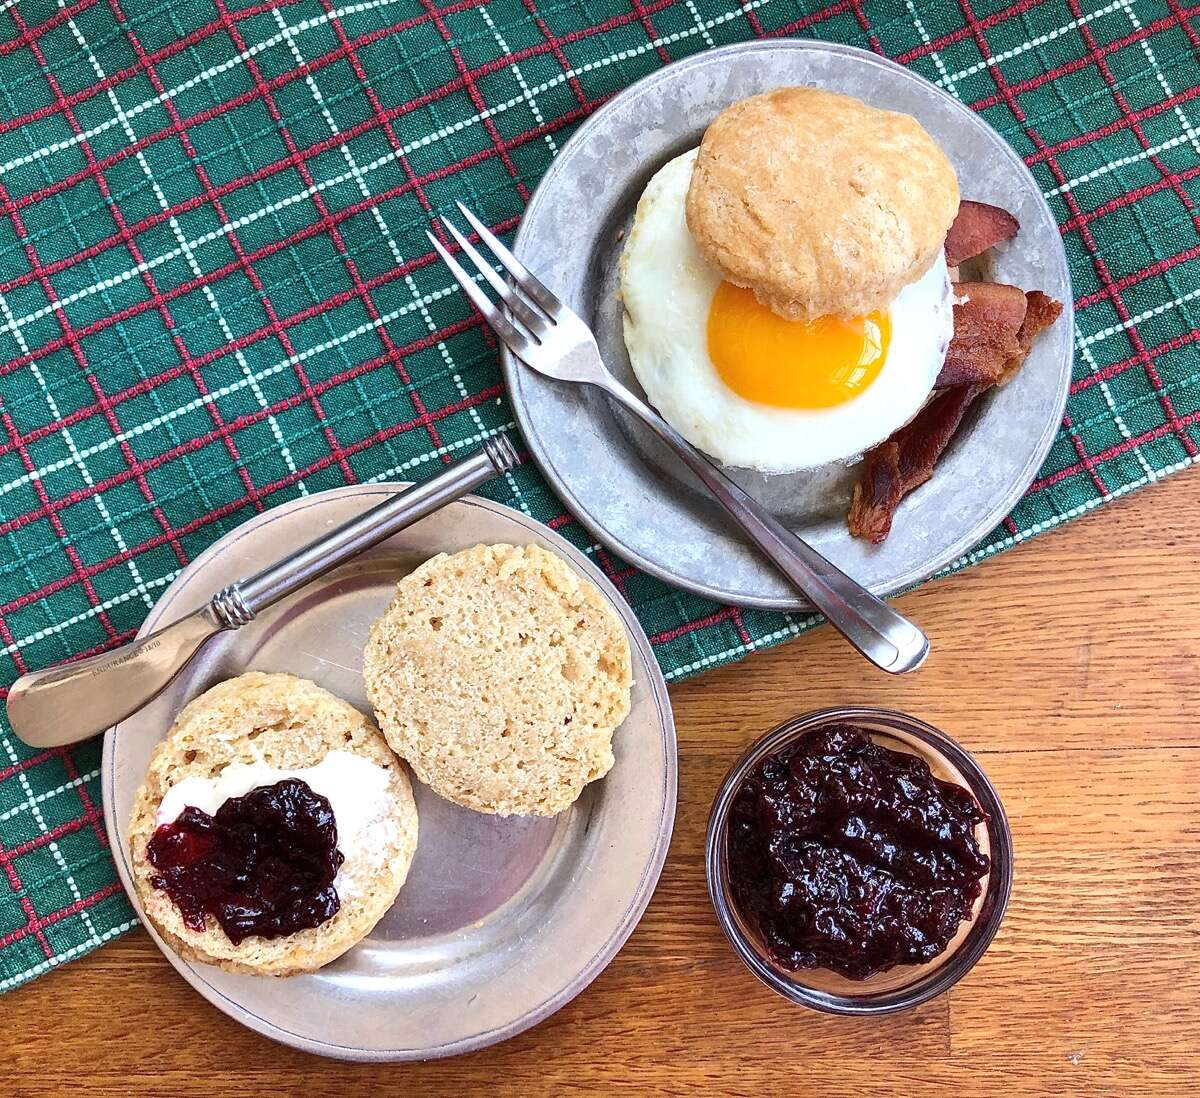 Whole wheat sourdough biscuits made into a breakfast sandwich, and simply spread with butter and jam.